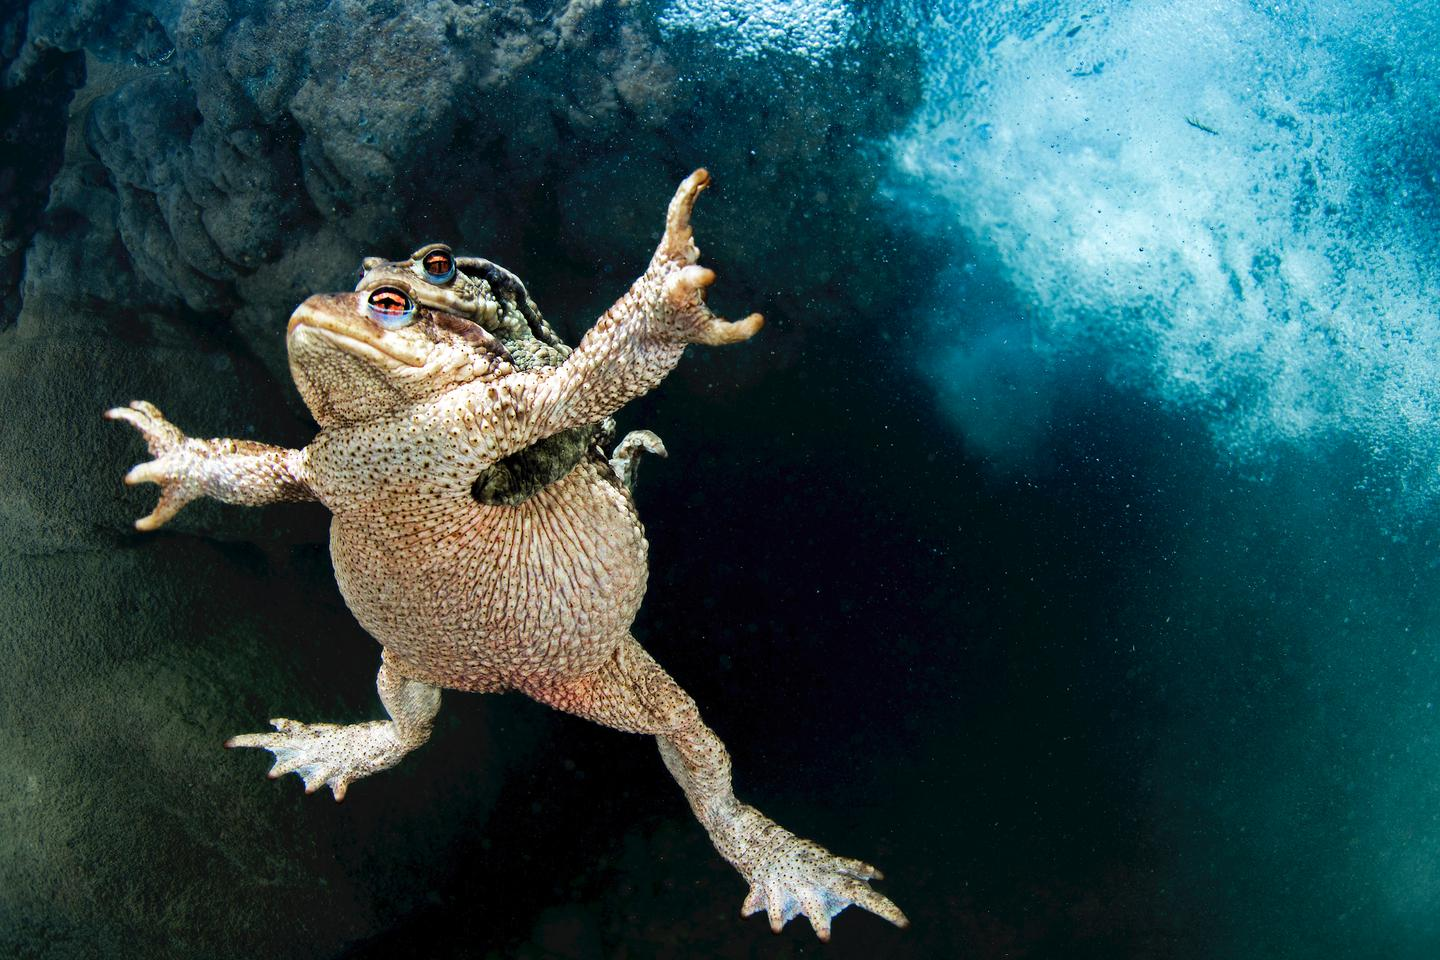 Aquatic Life Finalist. 'Hold on Tight'. A male common toad (Bufo bufo) beneath a small waterfall in France's Lez River